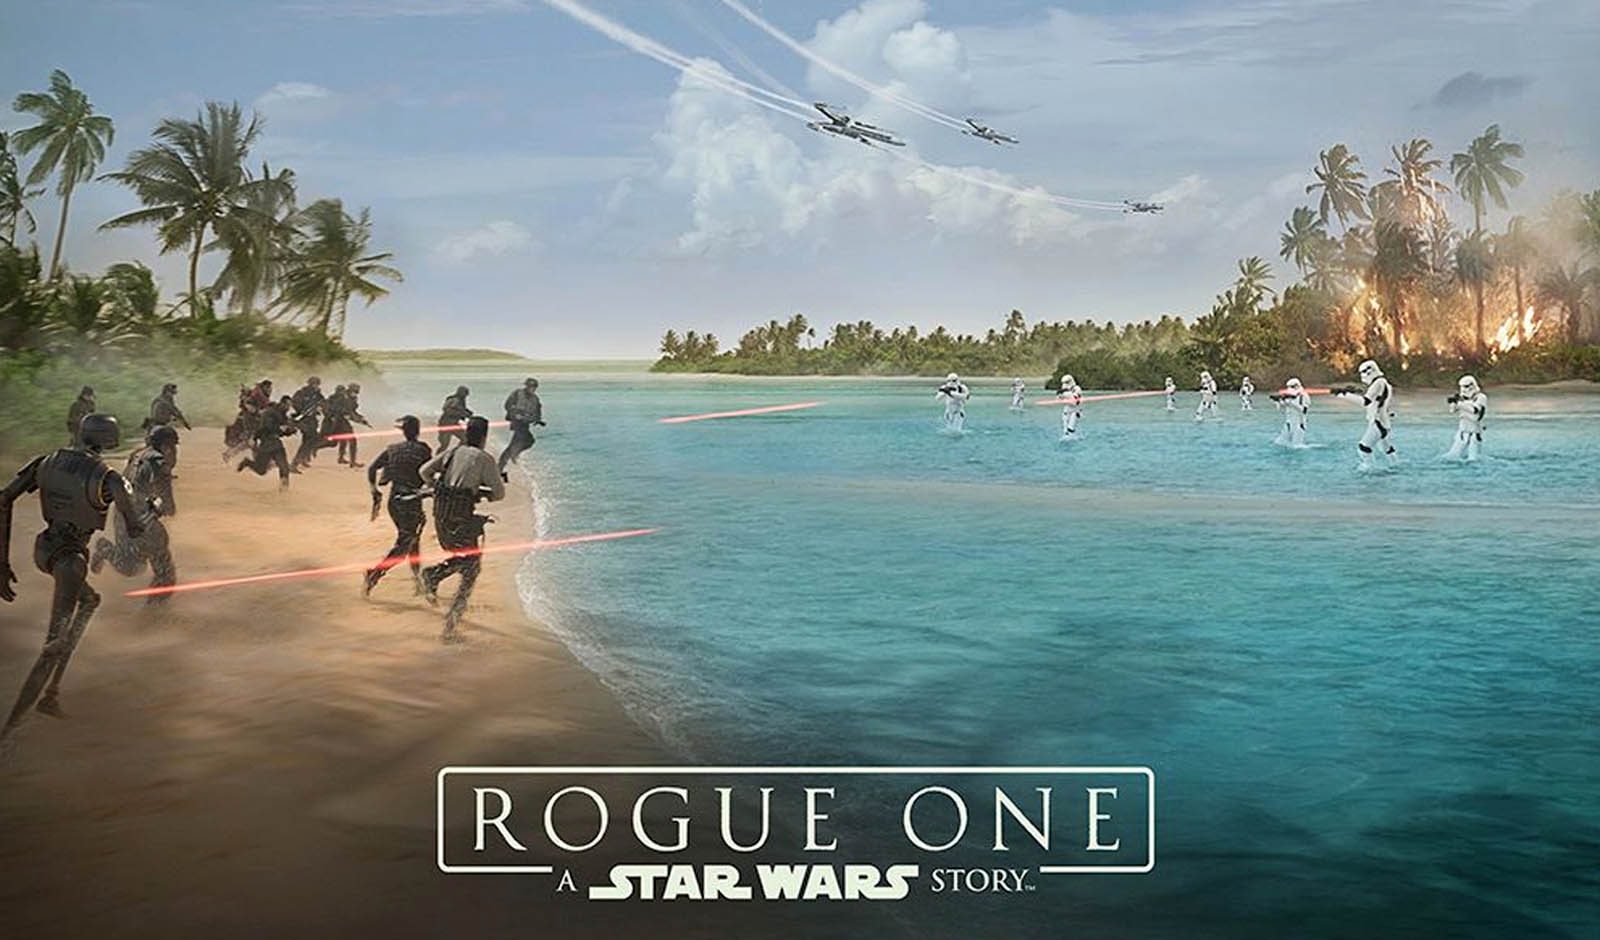 Star Wars Rogue One Battle Concept Art Wallpaper 6260 Fellowship